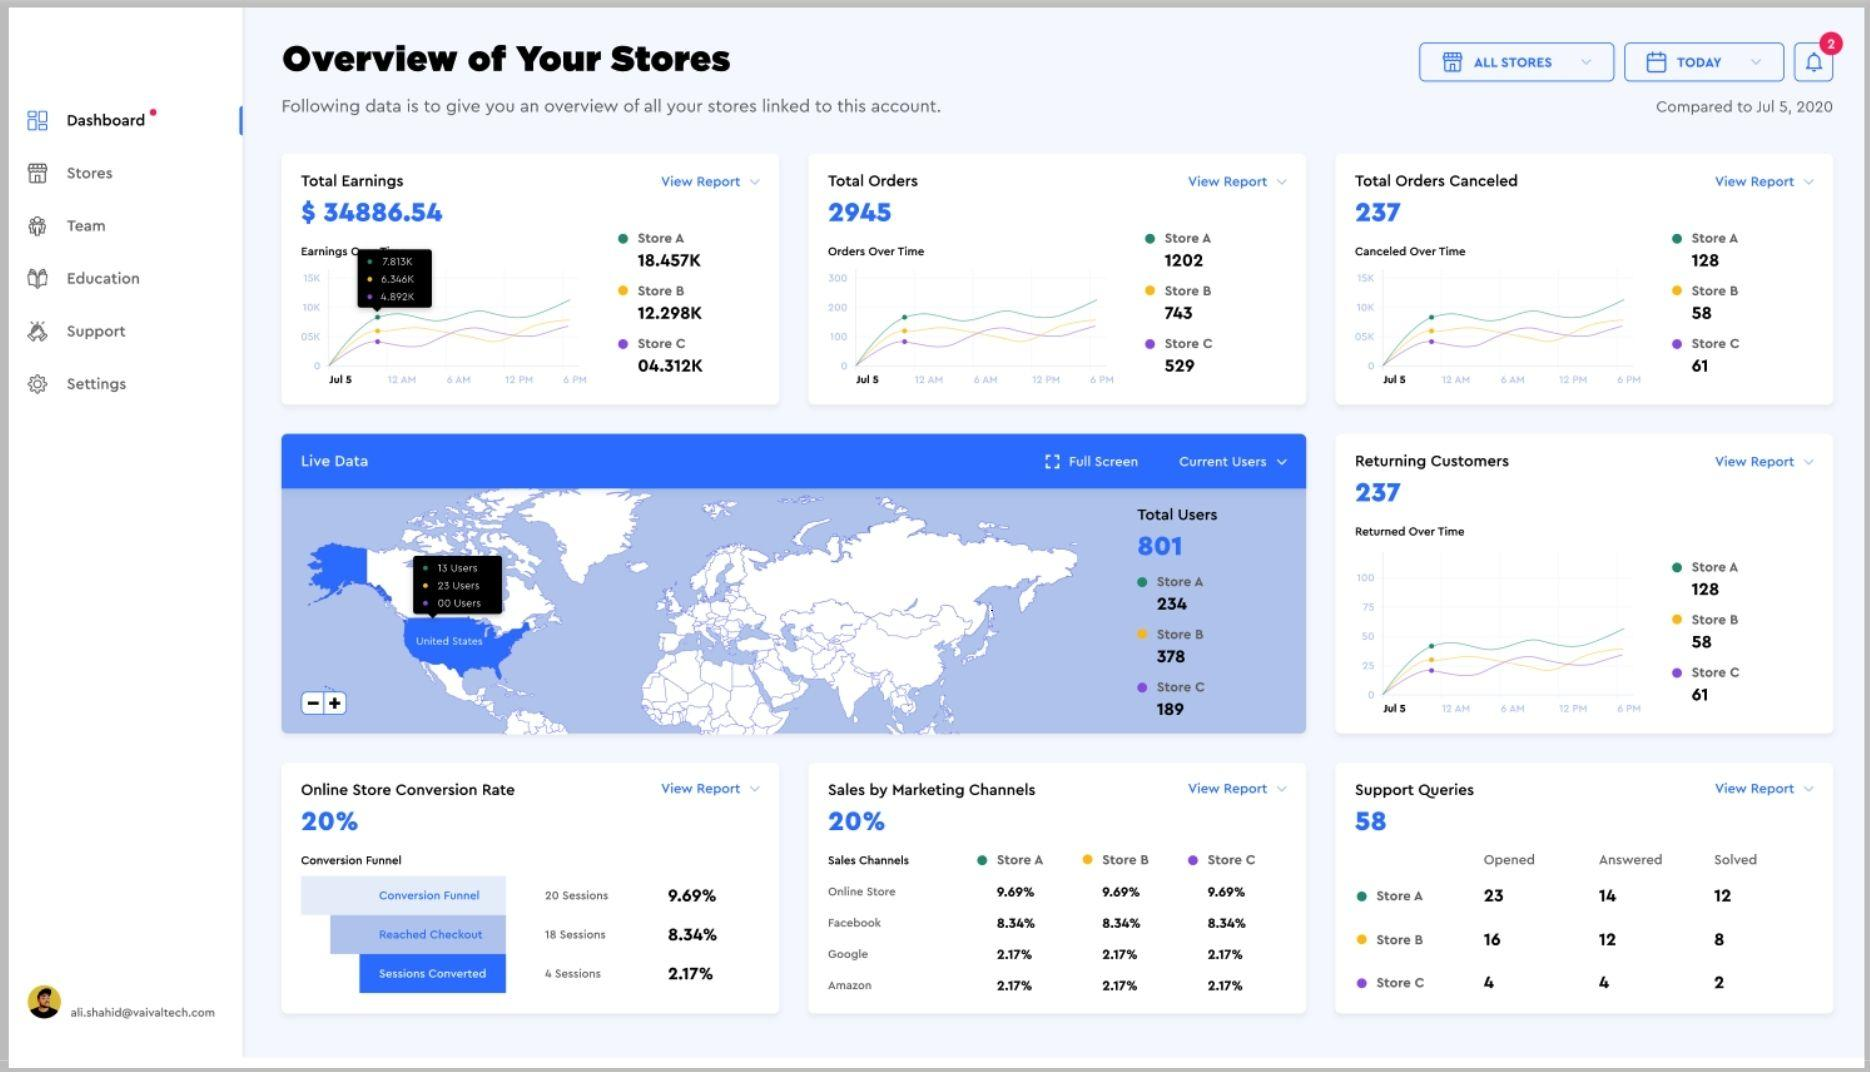 Overview of your stores